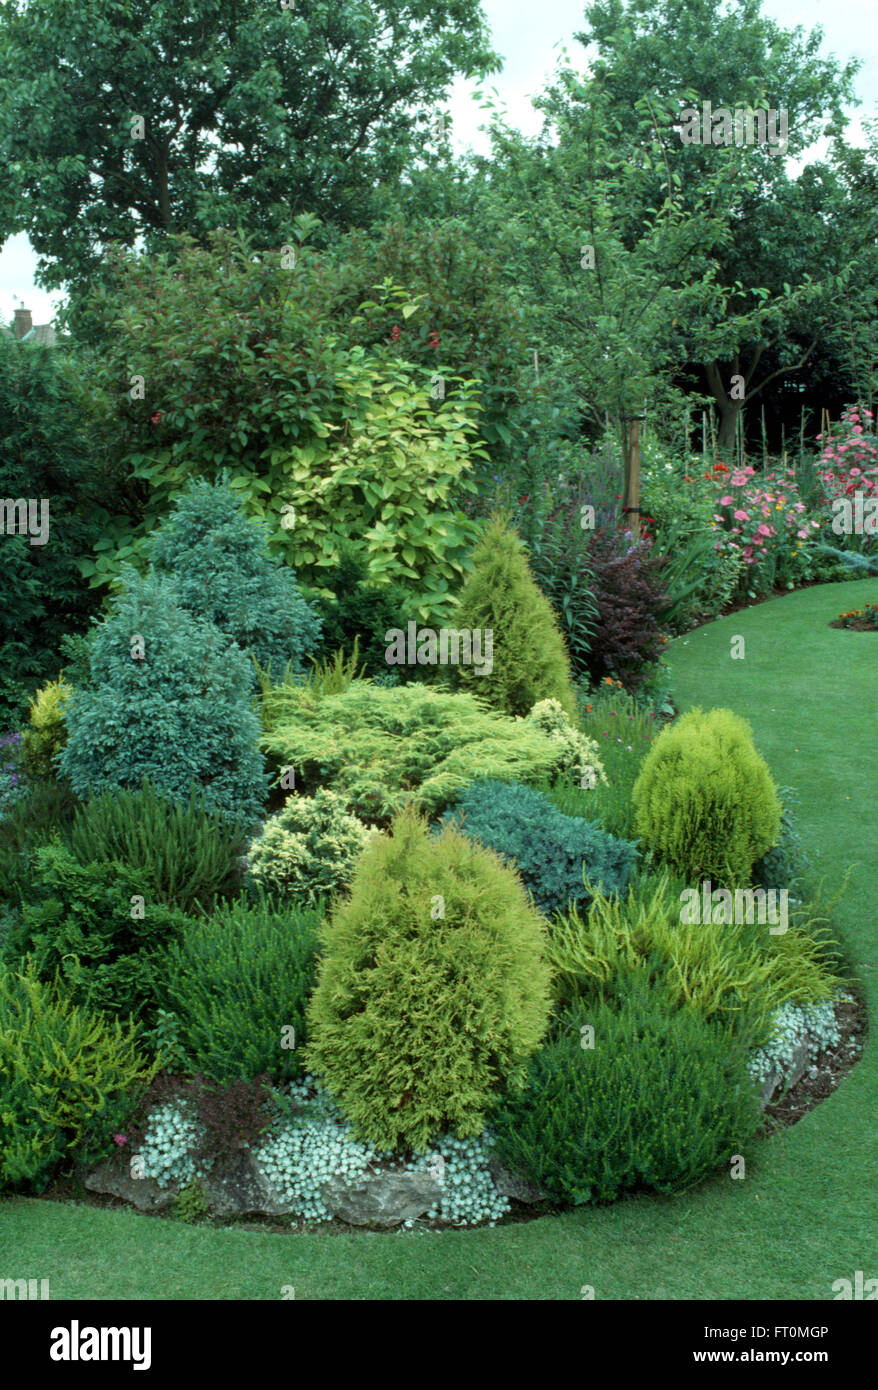 Low growing conifers in a well stocked border in a suburban garden in summer - Stock Image